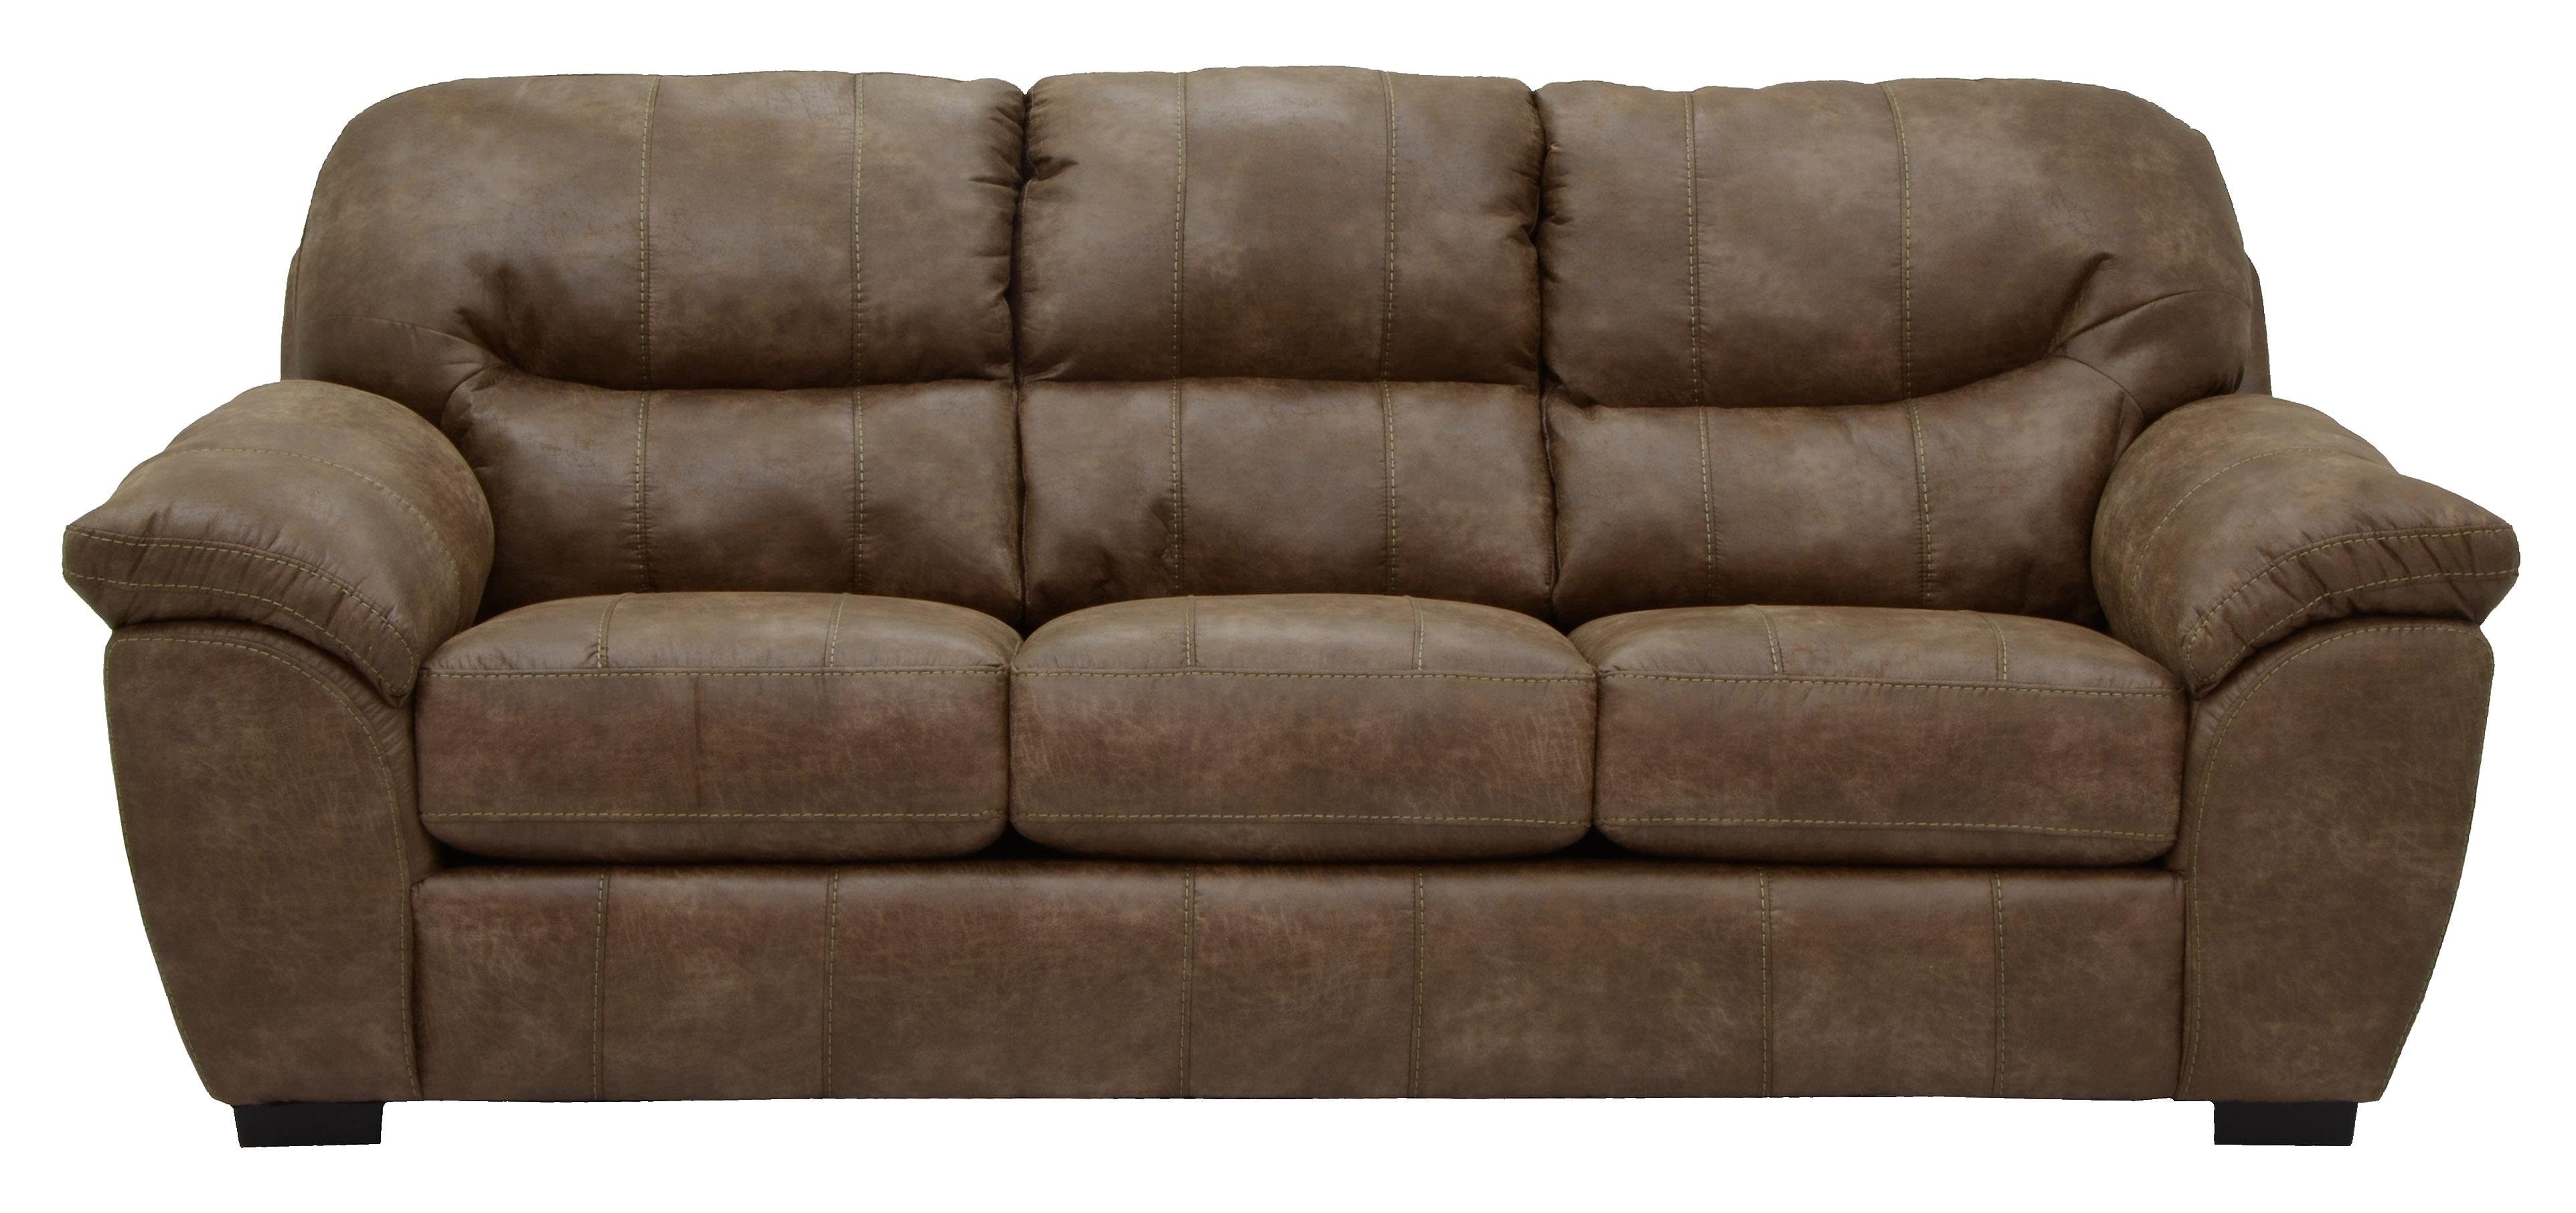 faux leather sofa for living rooms and family rooms by jackson  - faux leather sofa for living rooms and family rooms